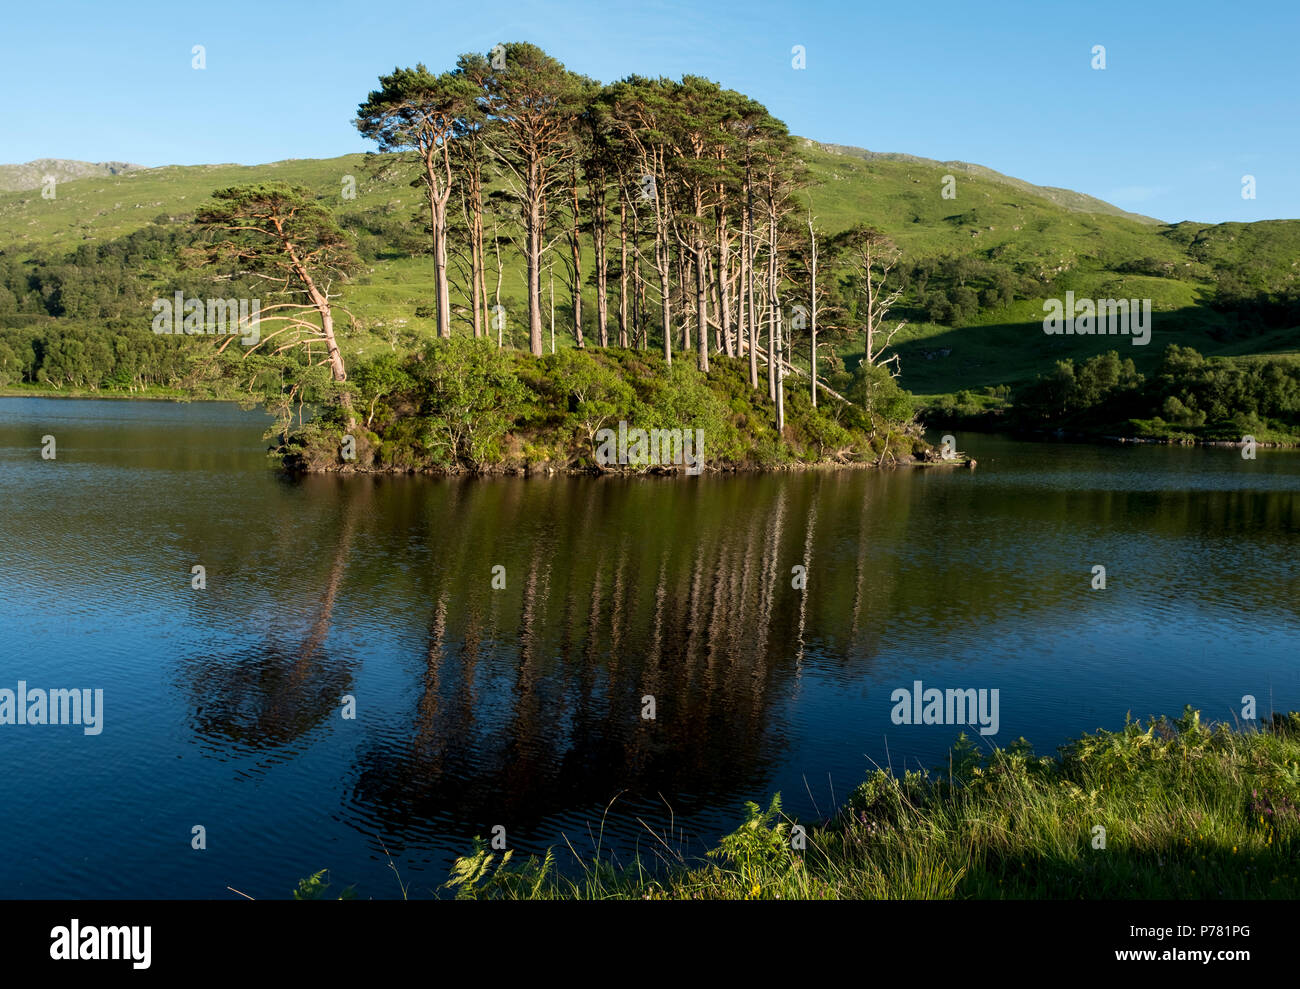 Eilean na Moine island, Loch Eilt, Lochaber, Scotland. This small island was used as a location in the Harry Potter the Chamber of Secrets. - Stock Image